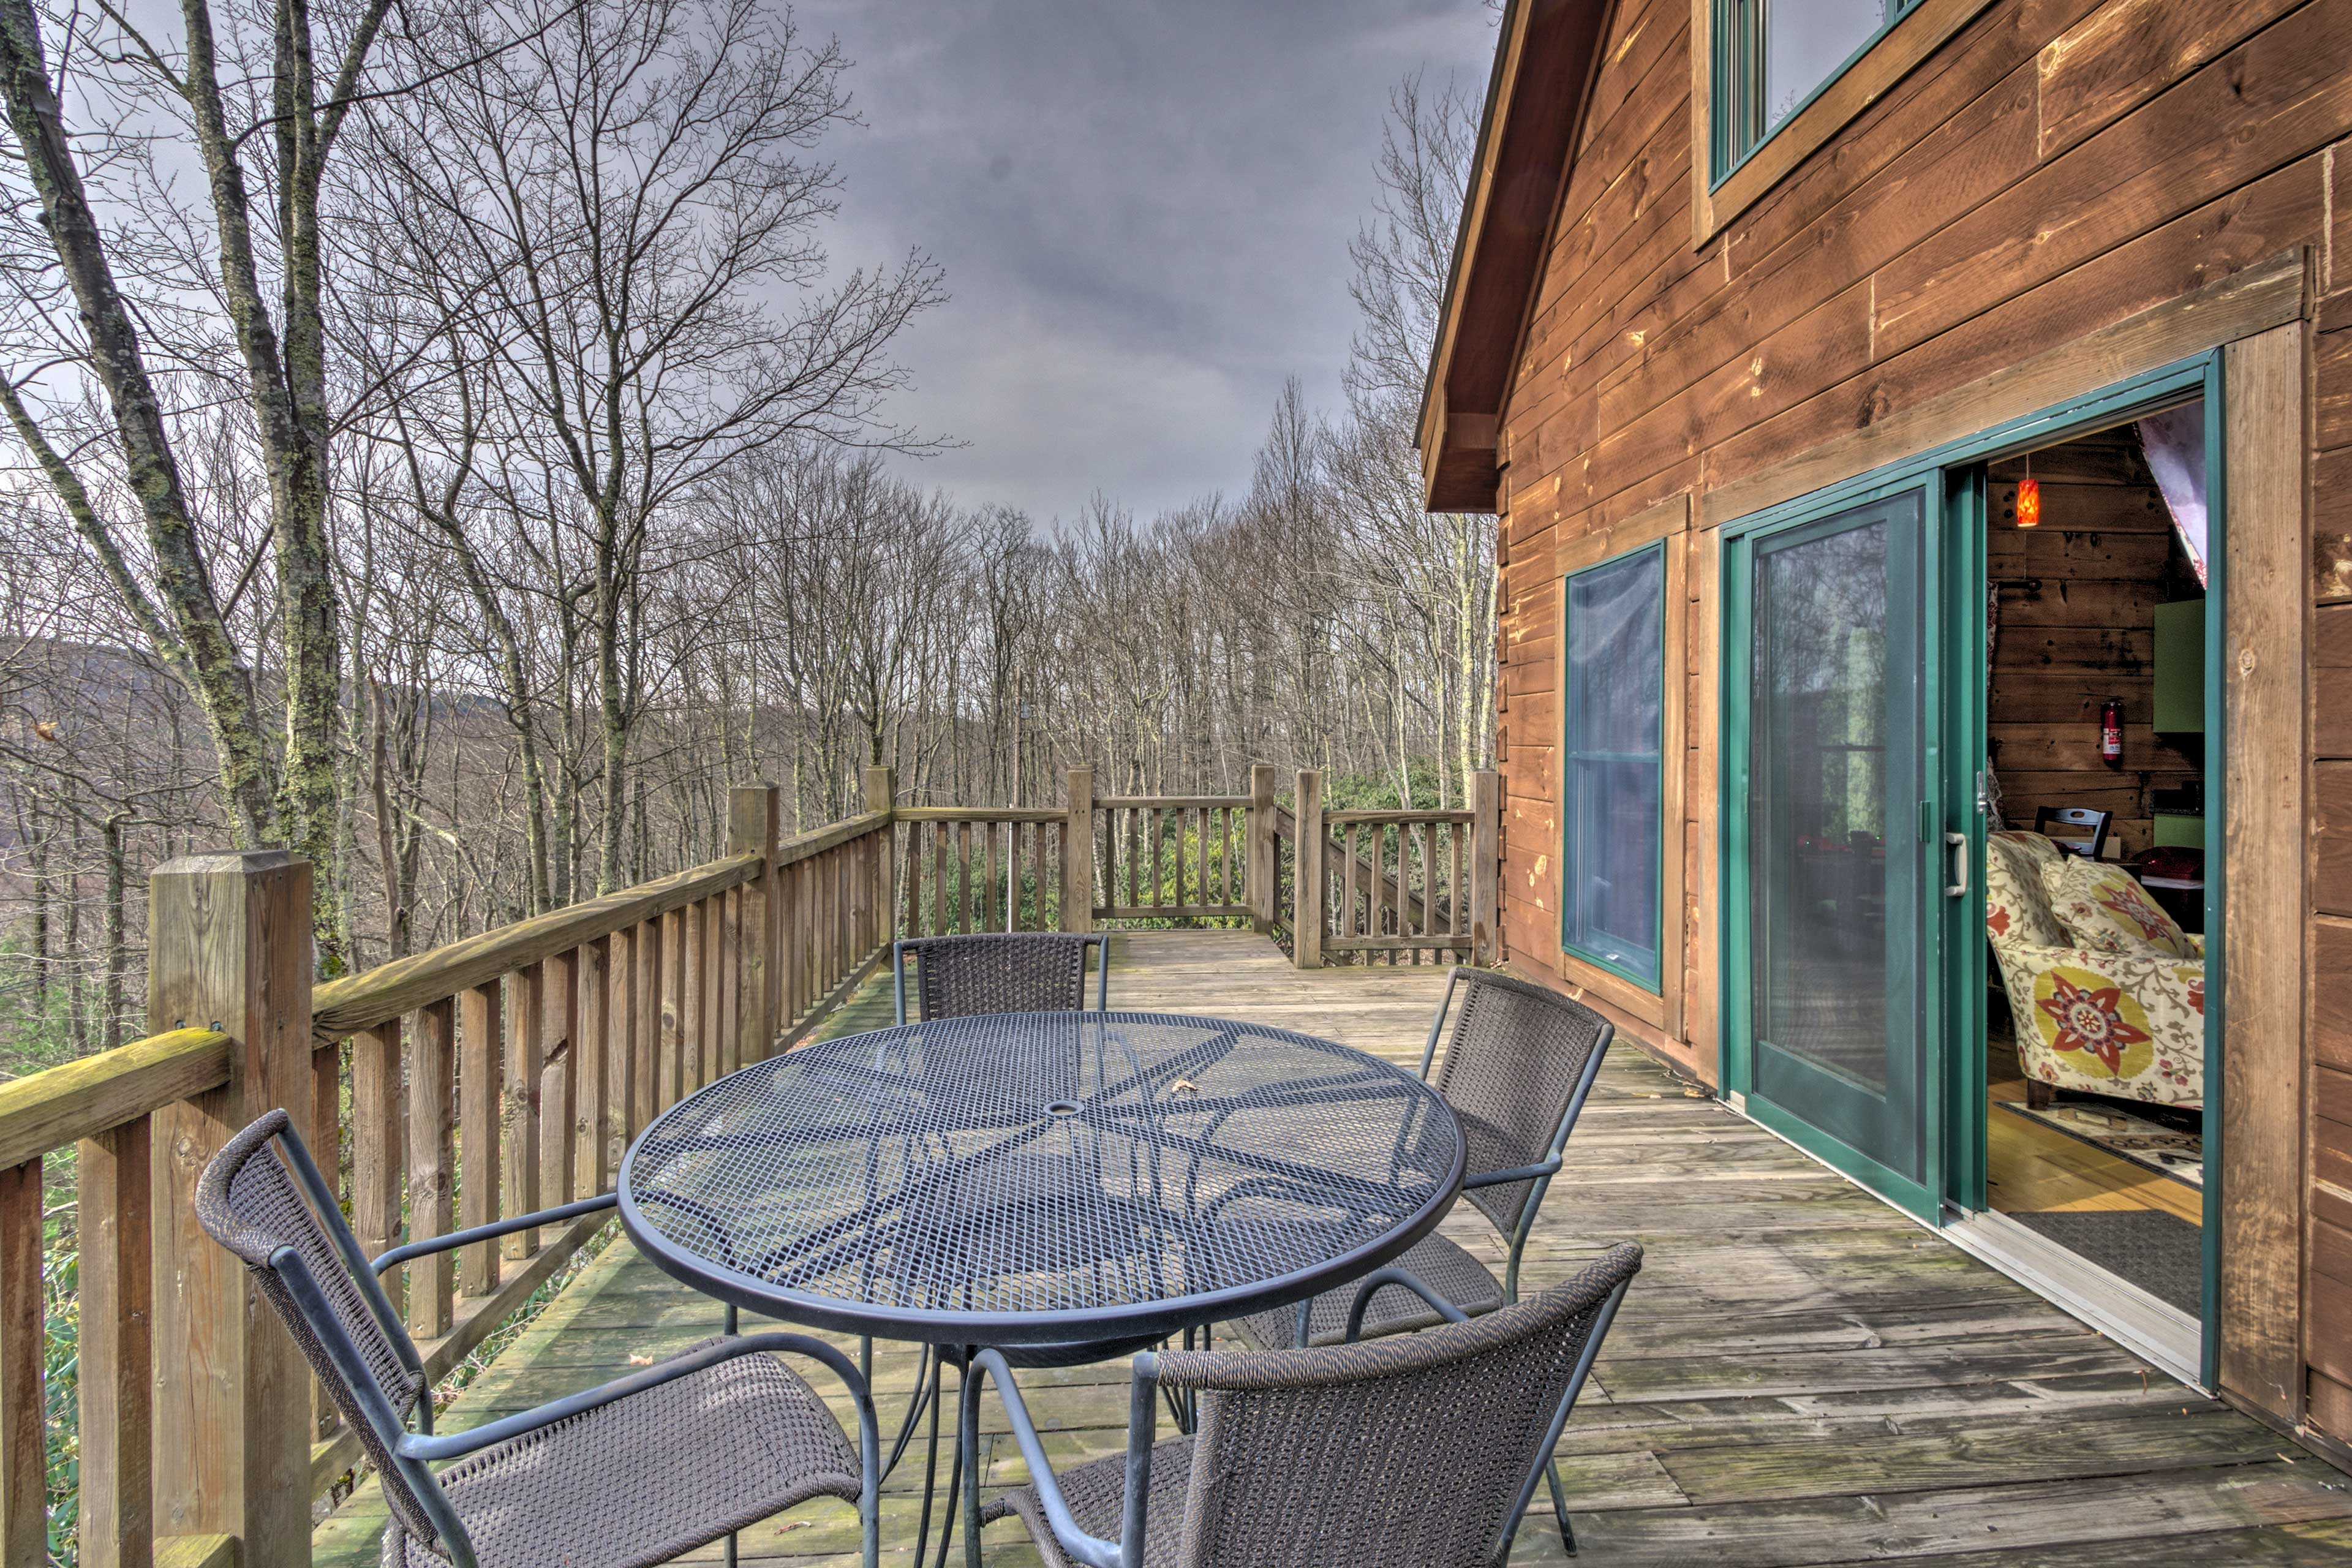 Just through the sliding glass doors, a 4-person table rests on the deck!